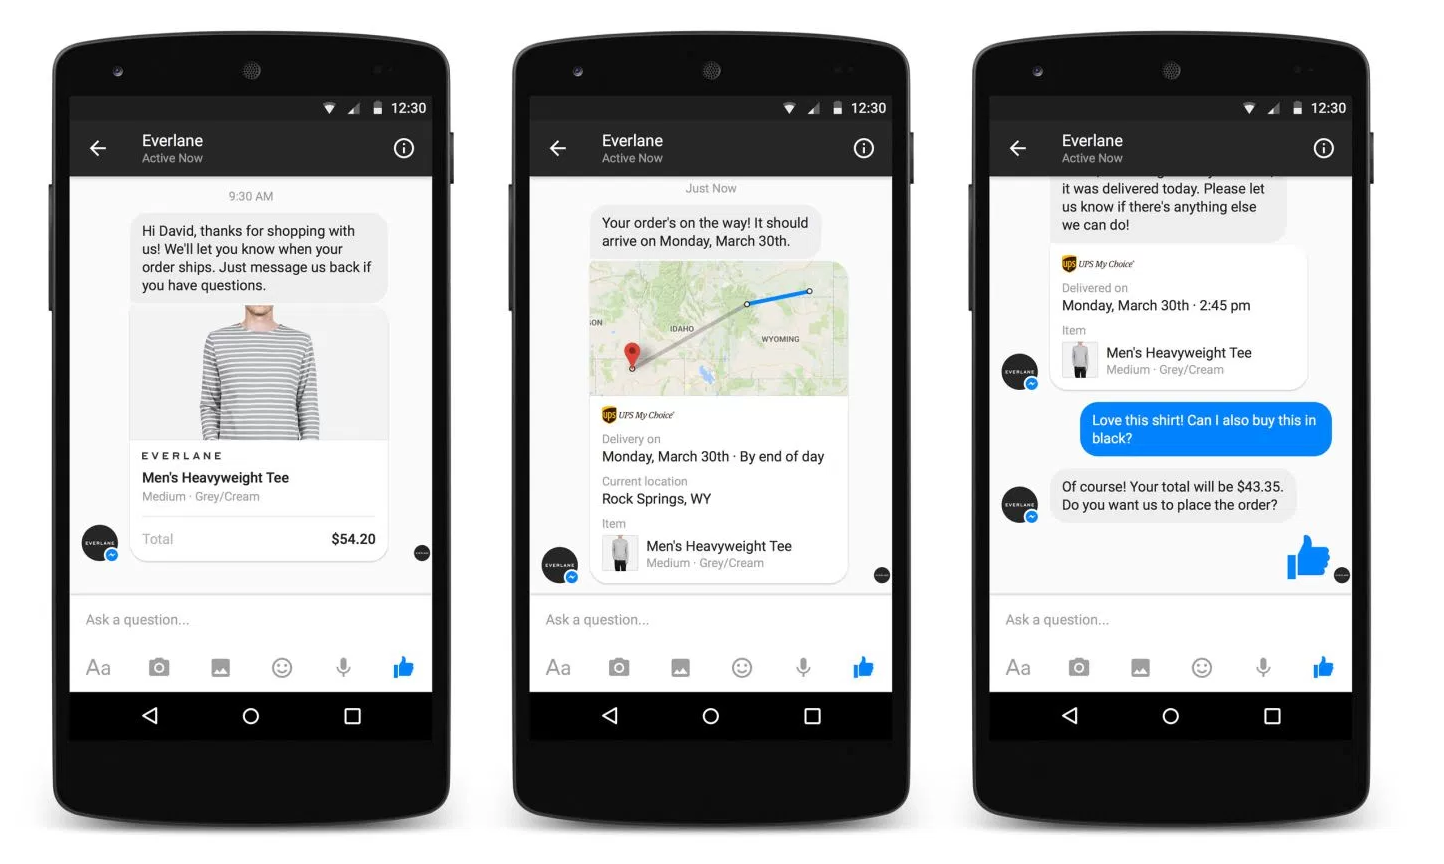 Everlane Facebook Messenger Bot